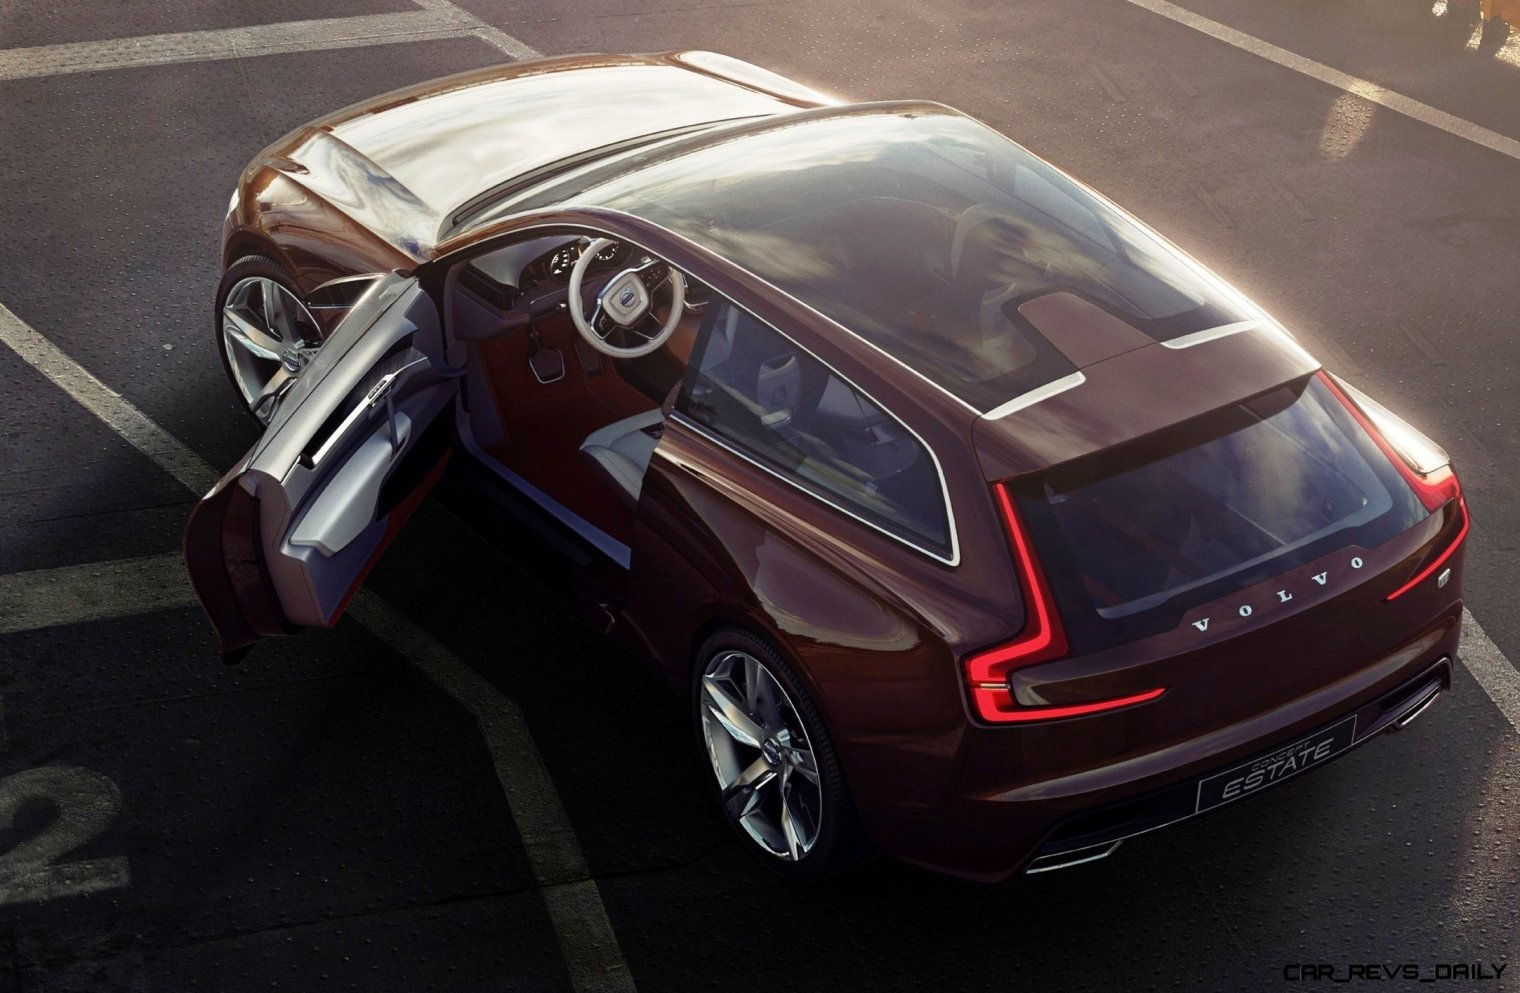 Concept Estate Confirms It! Volvo's New Design Lead Th. Ingenlath Should Be Sweden's Man of the Year 14